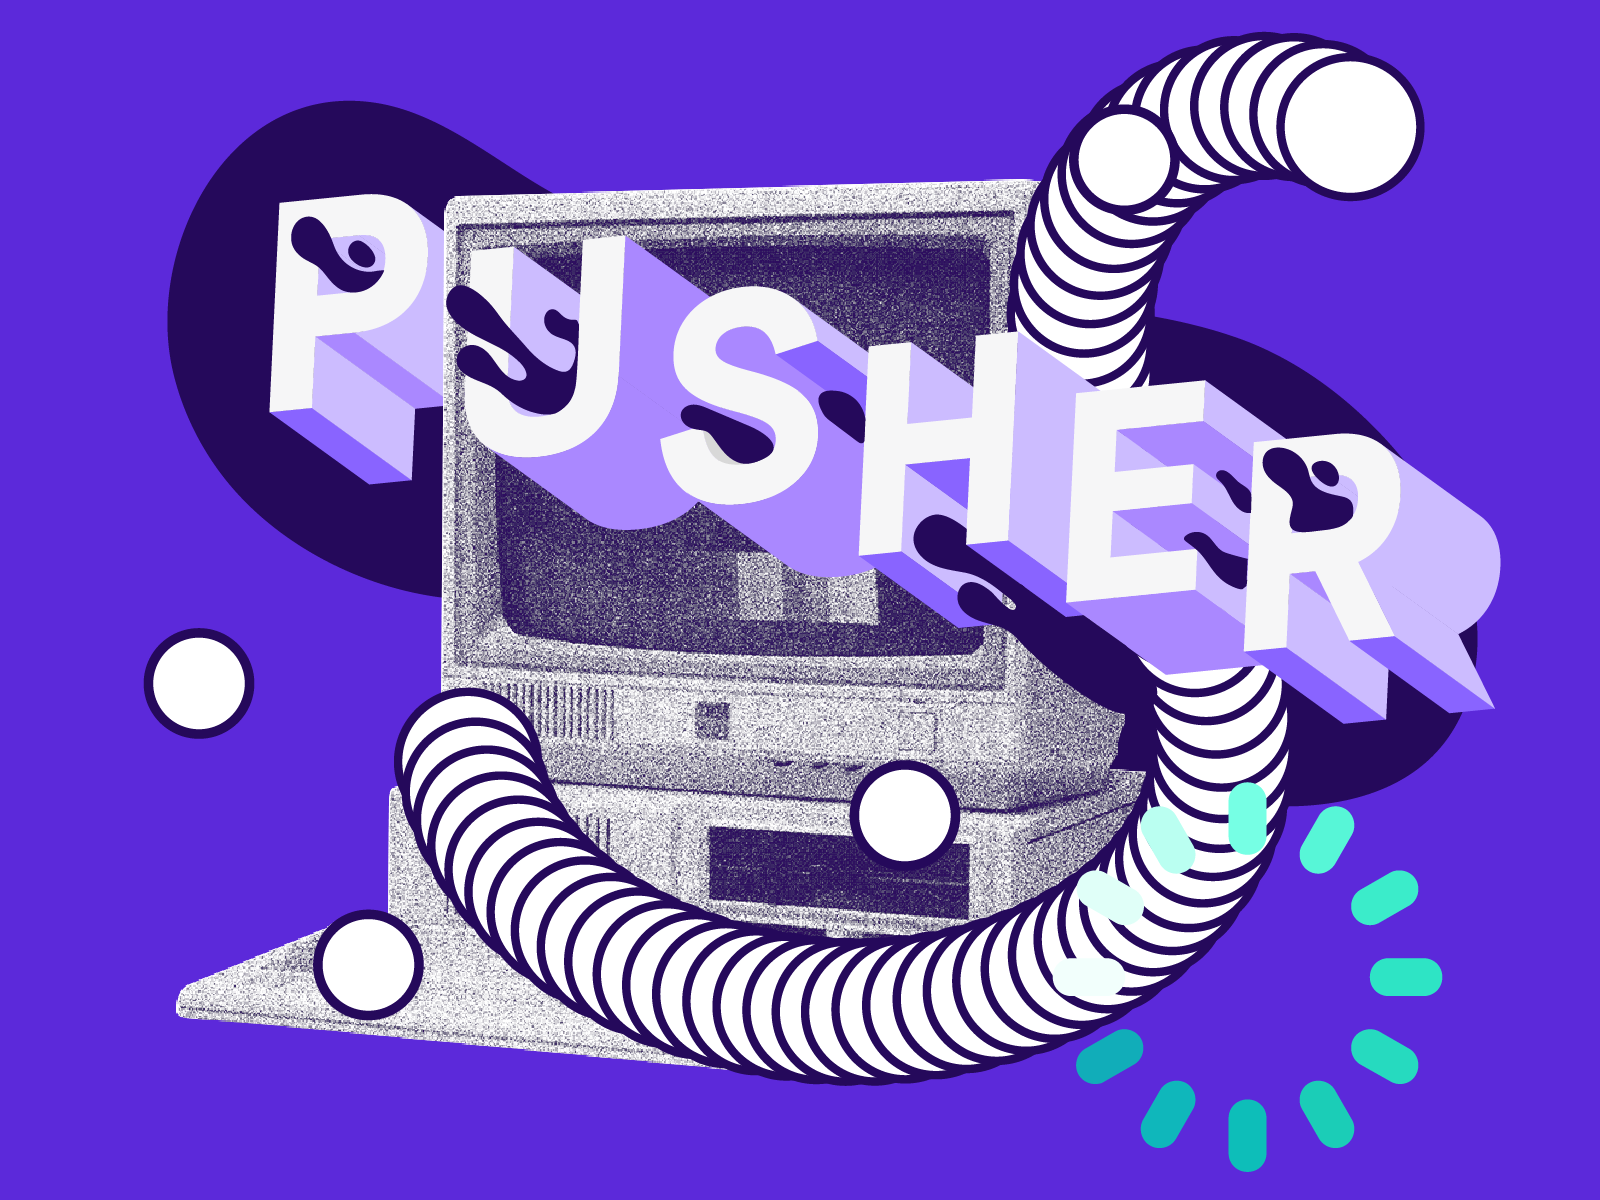 Pusher prez dribbble post1 juliette mothe